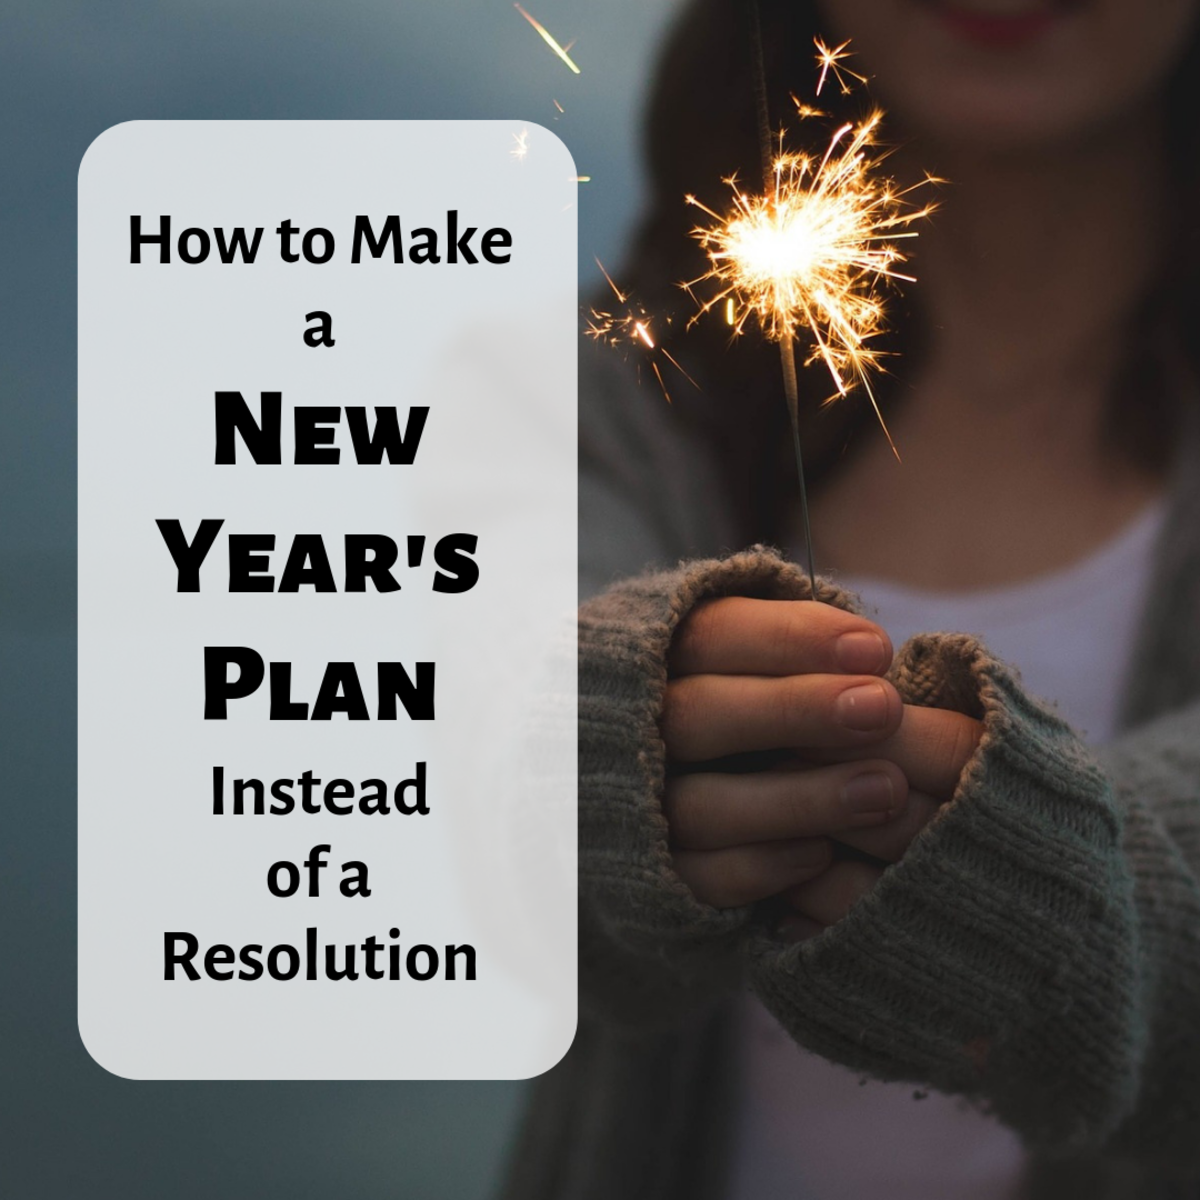 New Year's Resolution or New Year's Plan?